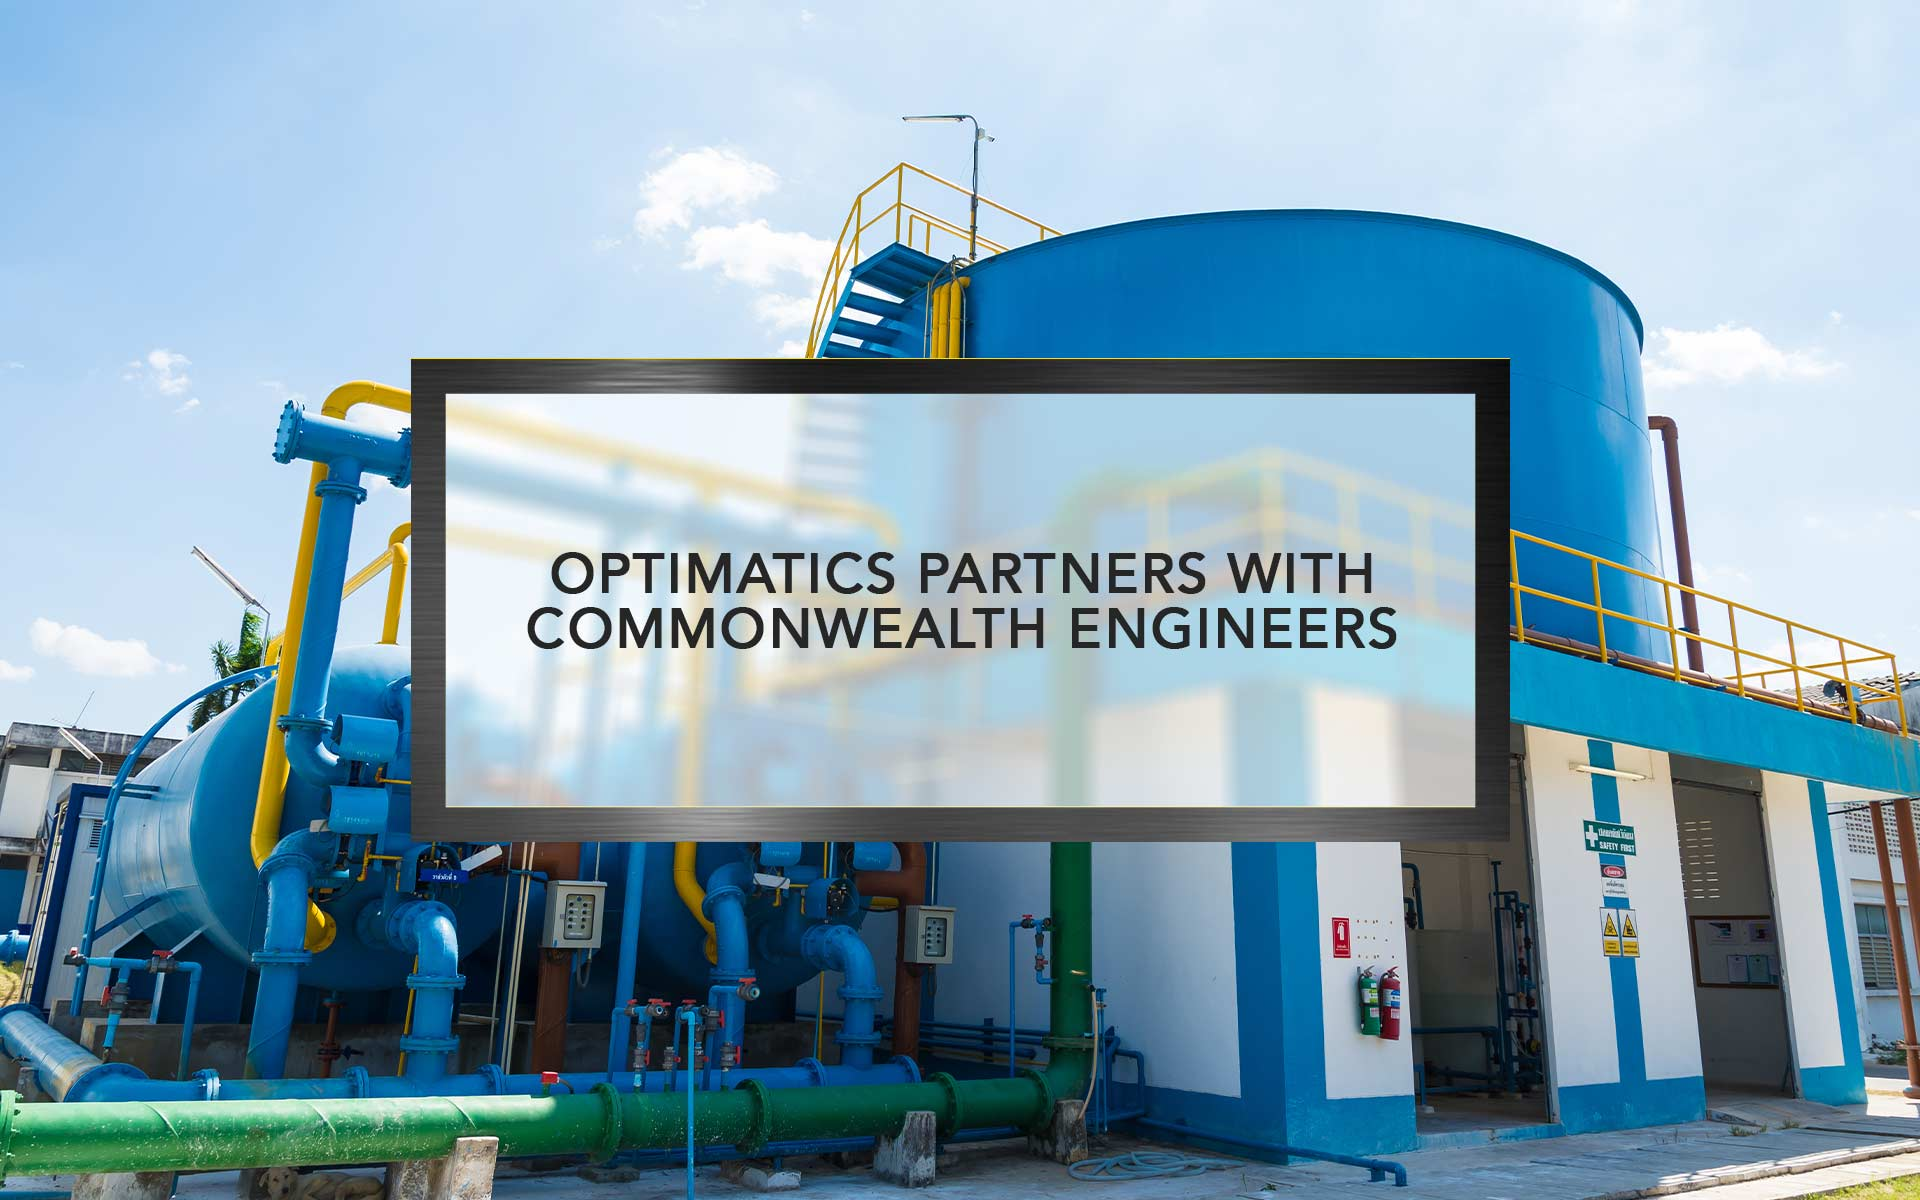 Optimatics partners with Commonwealth Engineers